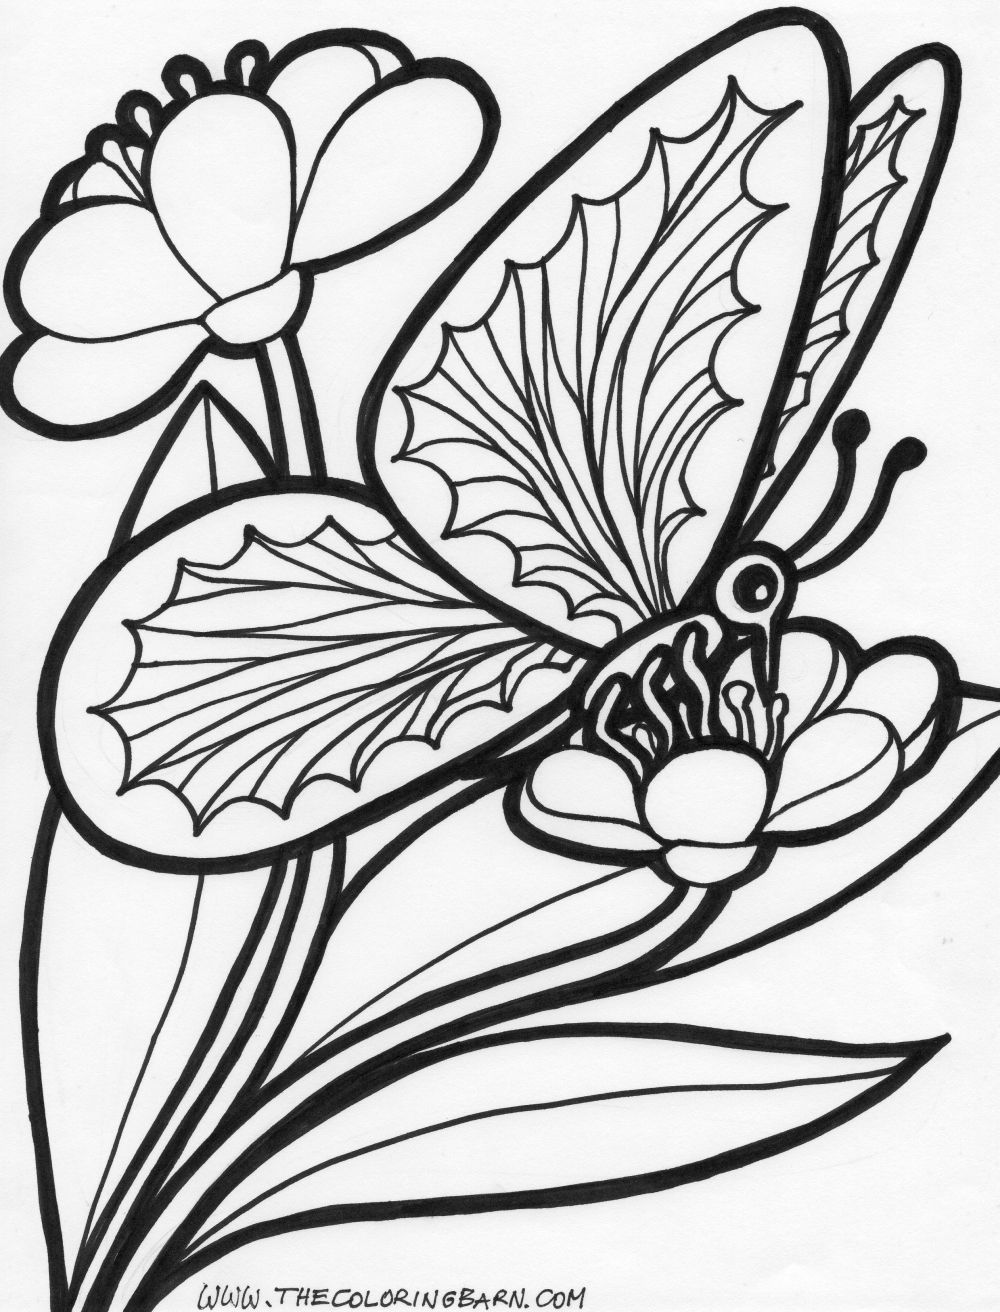 coloring pages for adults - Google Search | Art | Pinterest ...